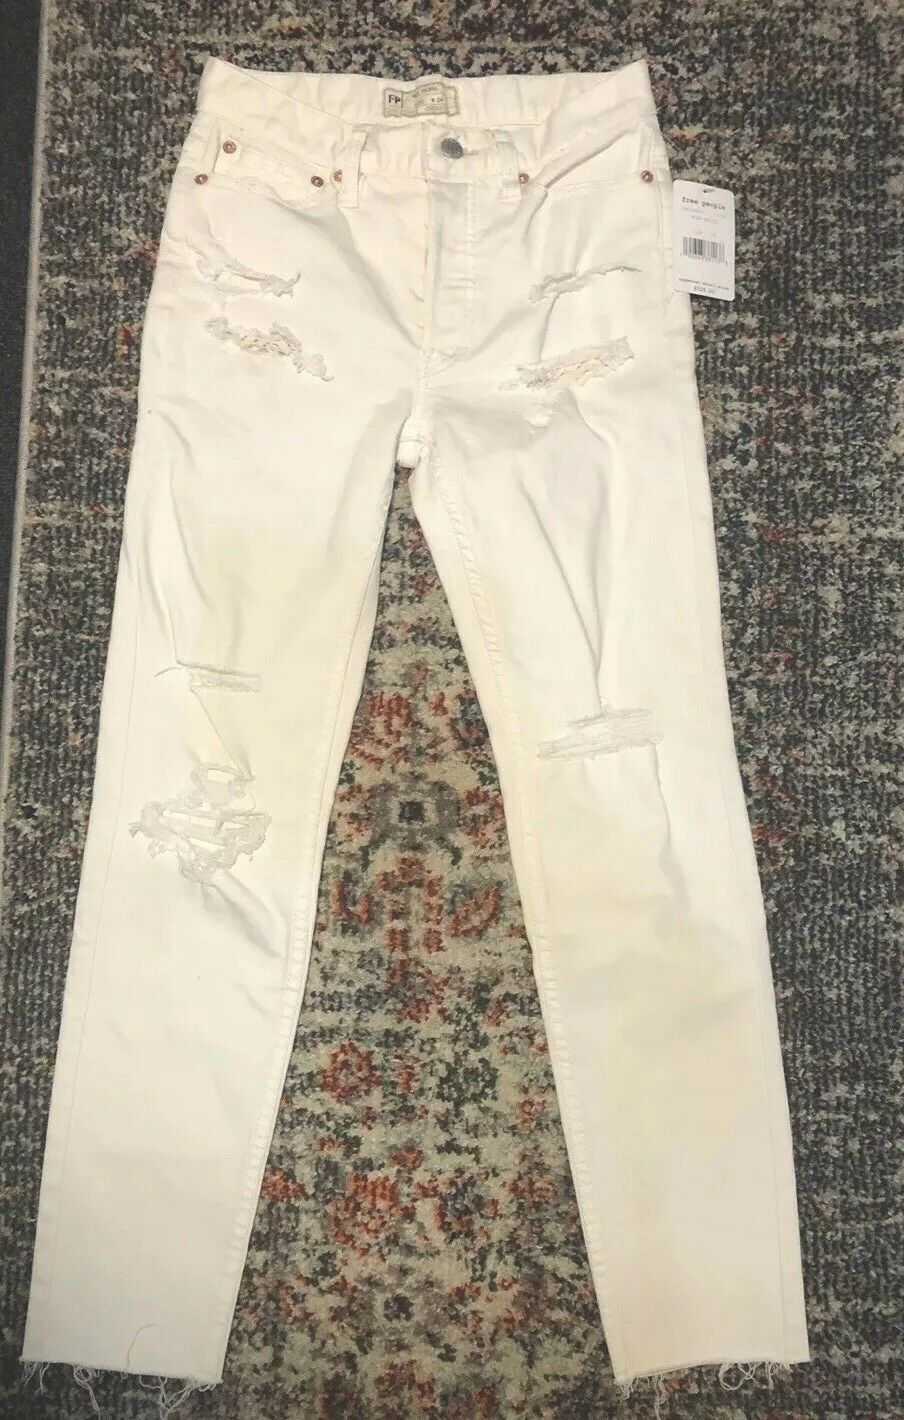 Free People Skinny Jeans 24 Ankle Ripped Distressed Washed White Womens NWT  128